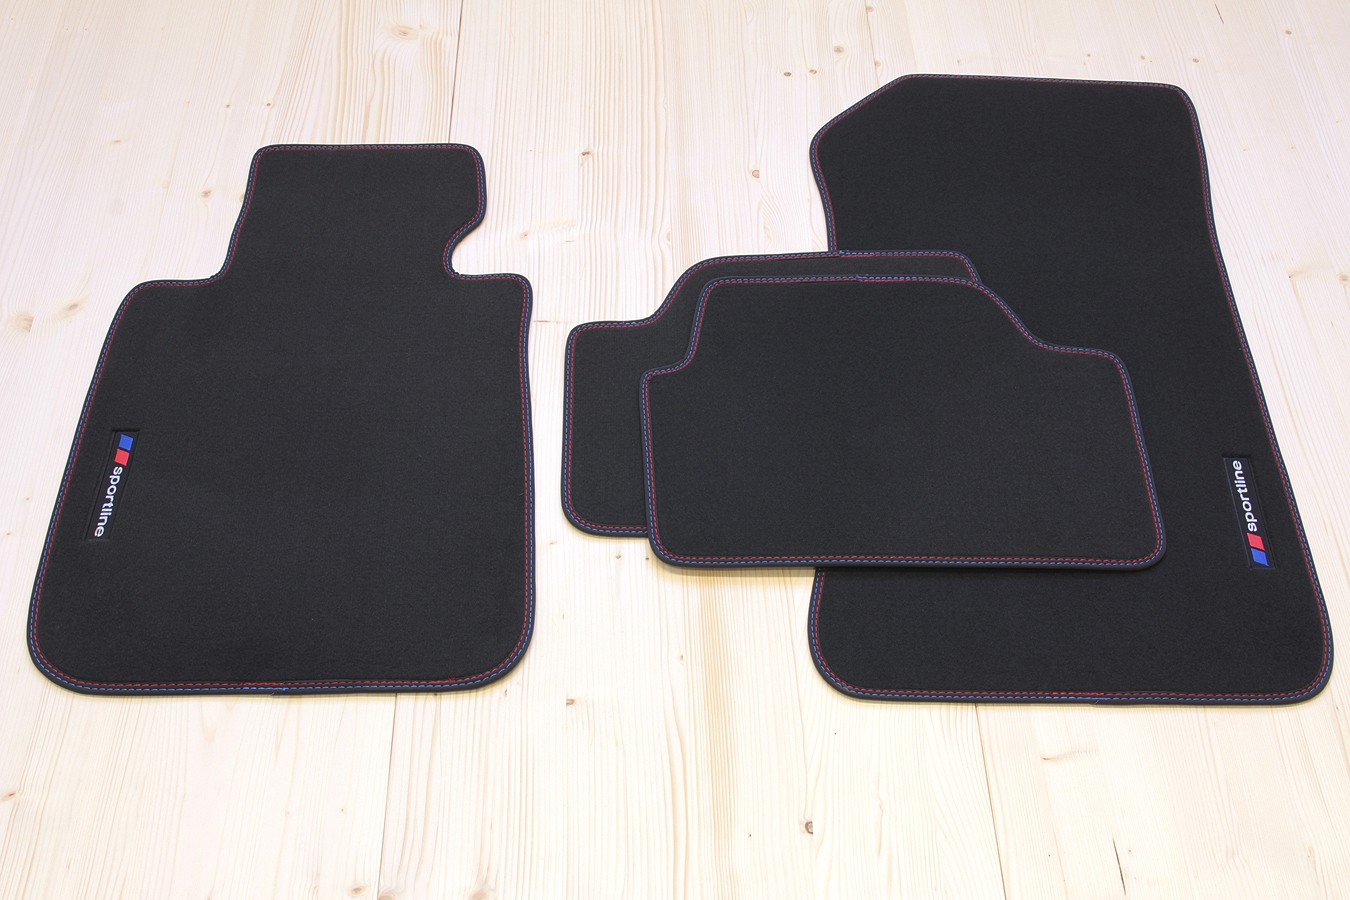 sportline tapis de sol pour bmw s rie 1 e87 5 portes ann e 2004 2011 tapis de voiture pour bmw. Black Bedroom Furniture Sets. Home Design Ideas